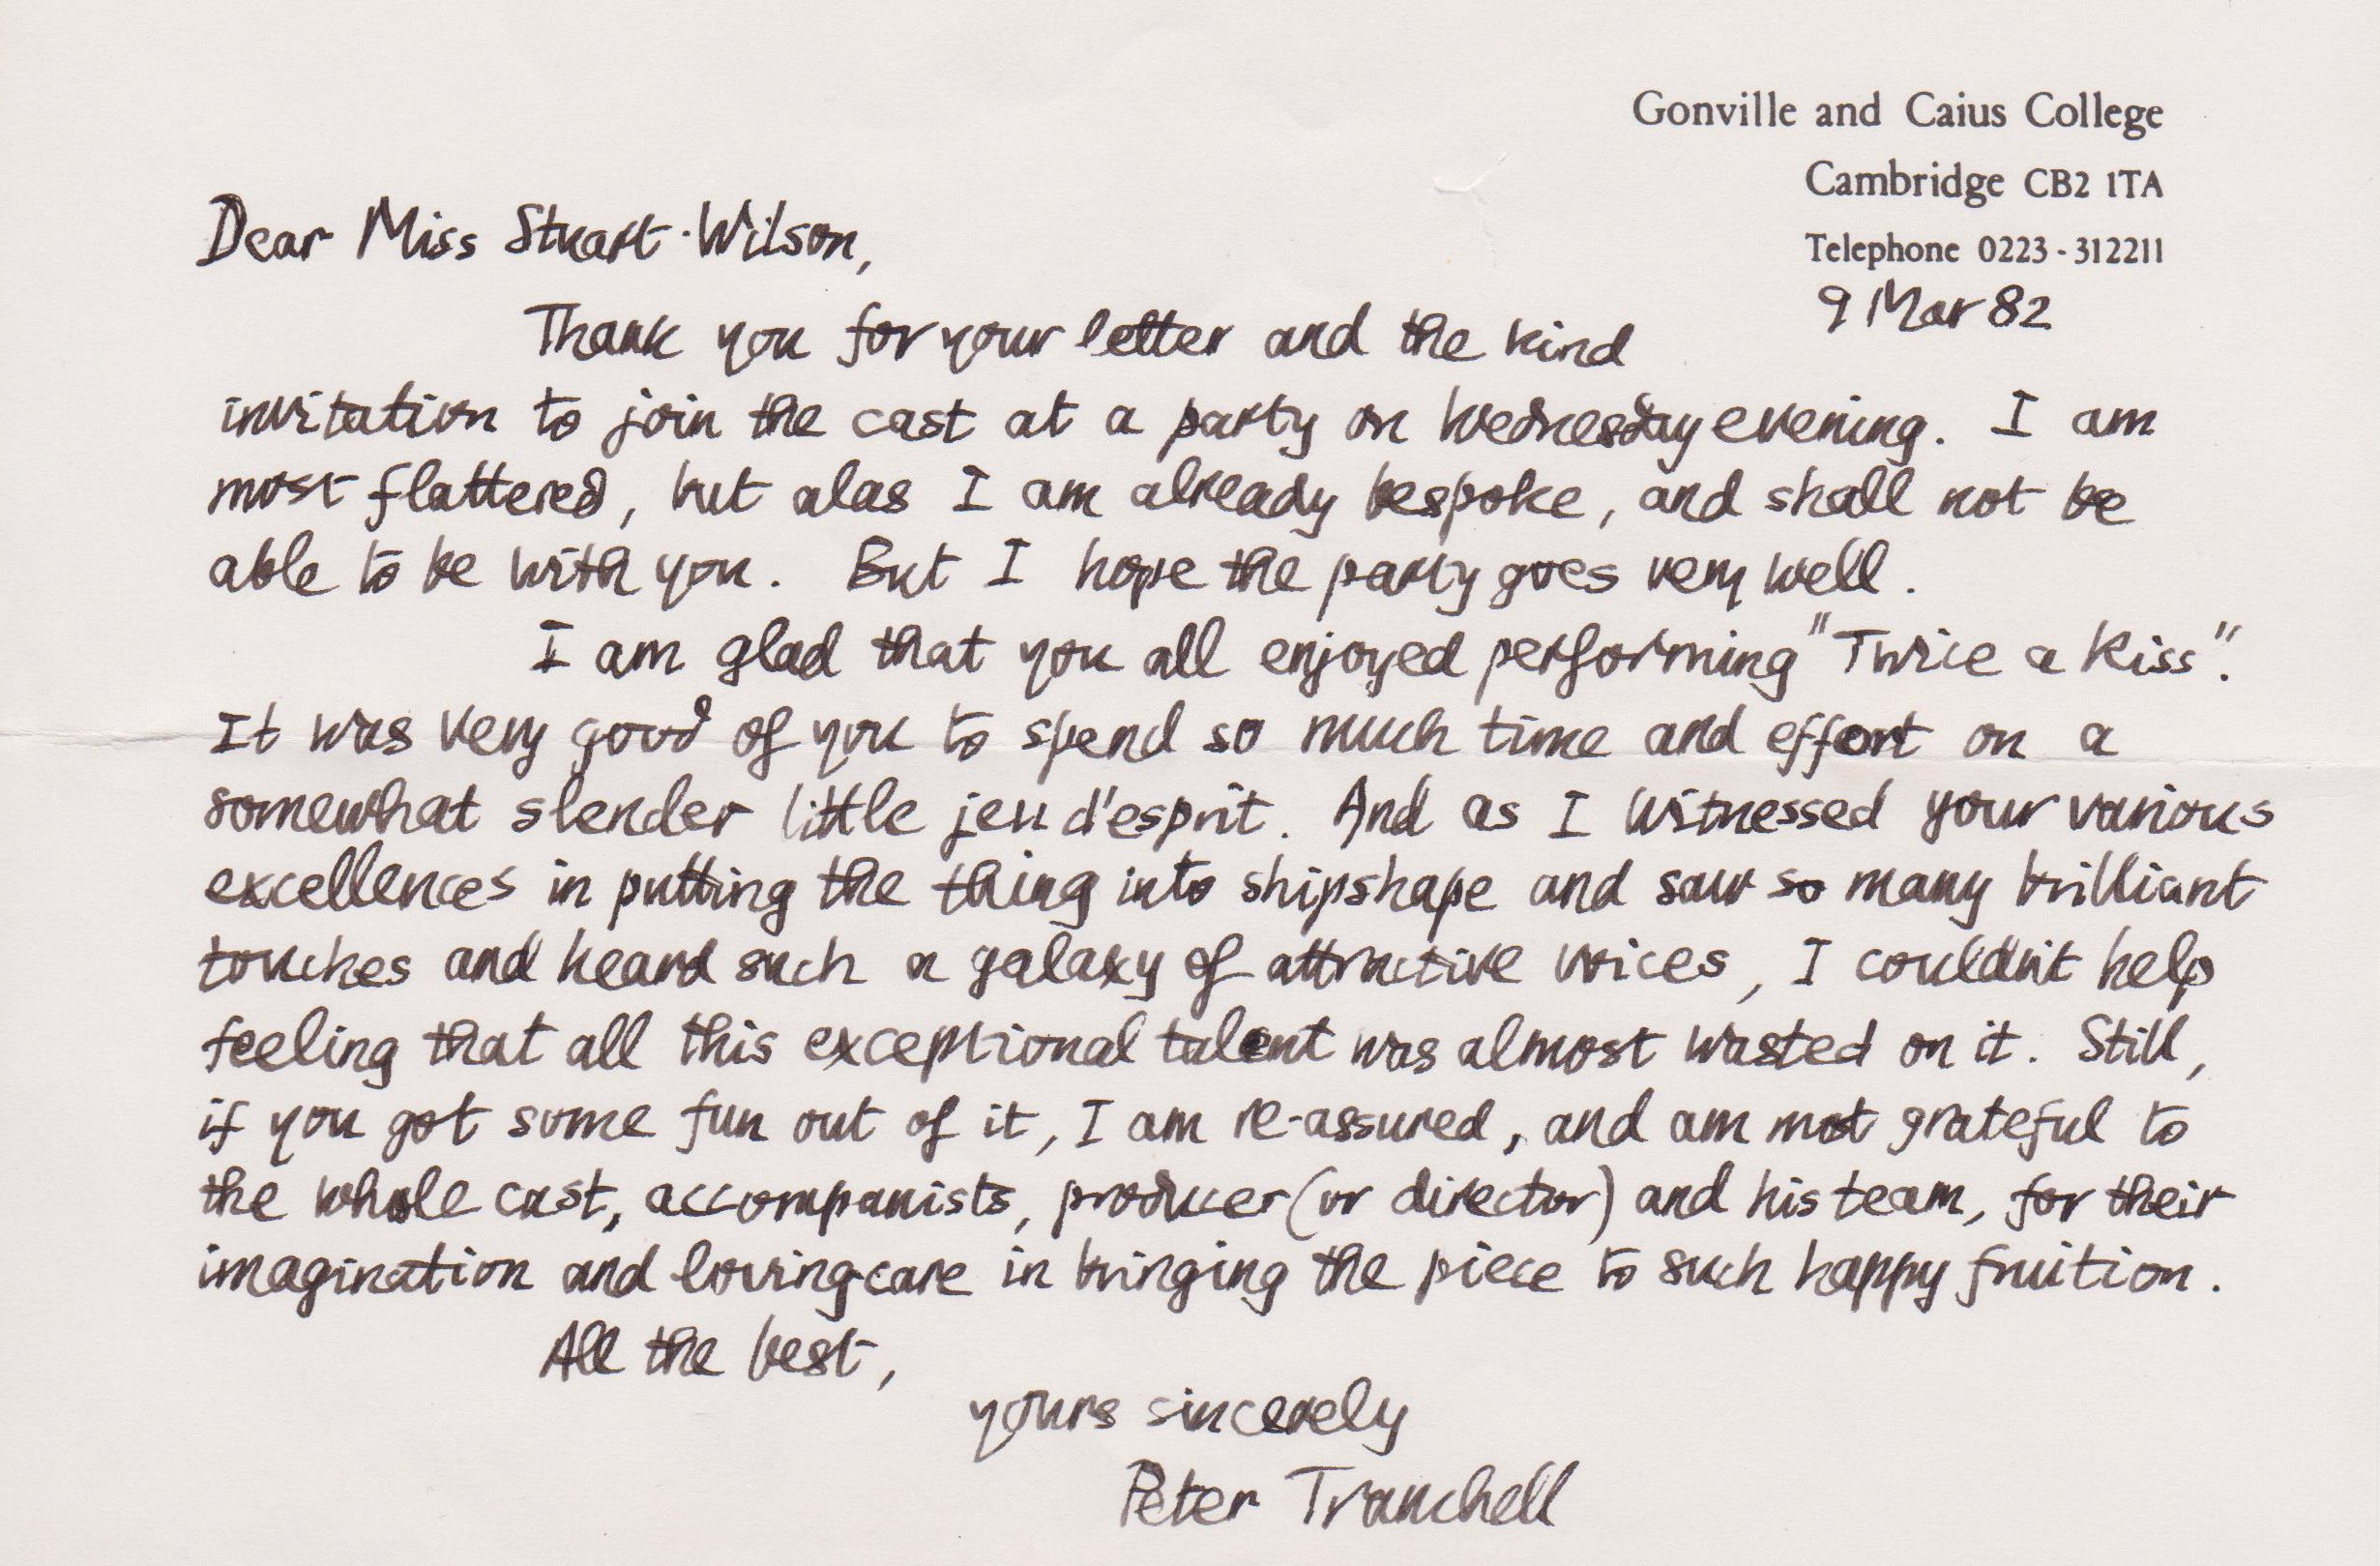 Letter from Peter Tranchell to Fiona Stuart-Wilson following the performance of Twice A Kiss at the Cambridge ADC in 1982